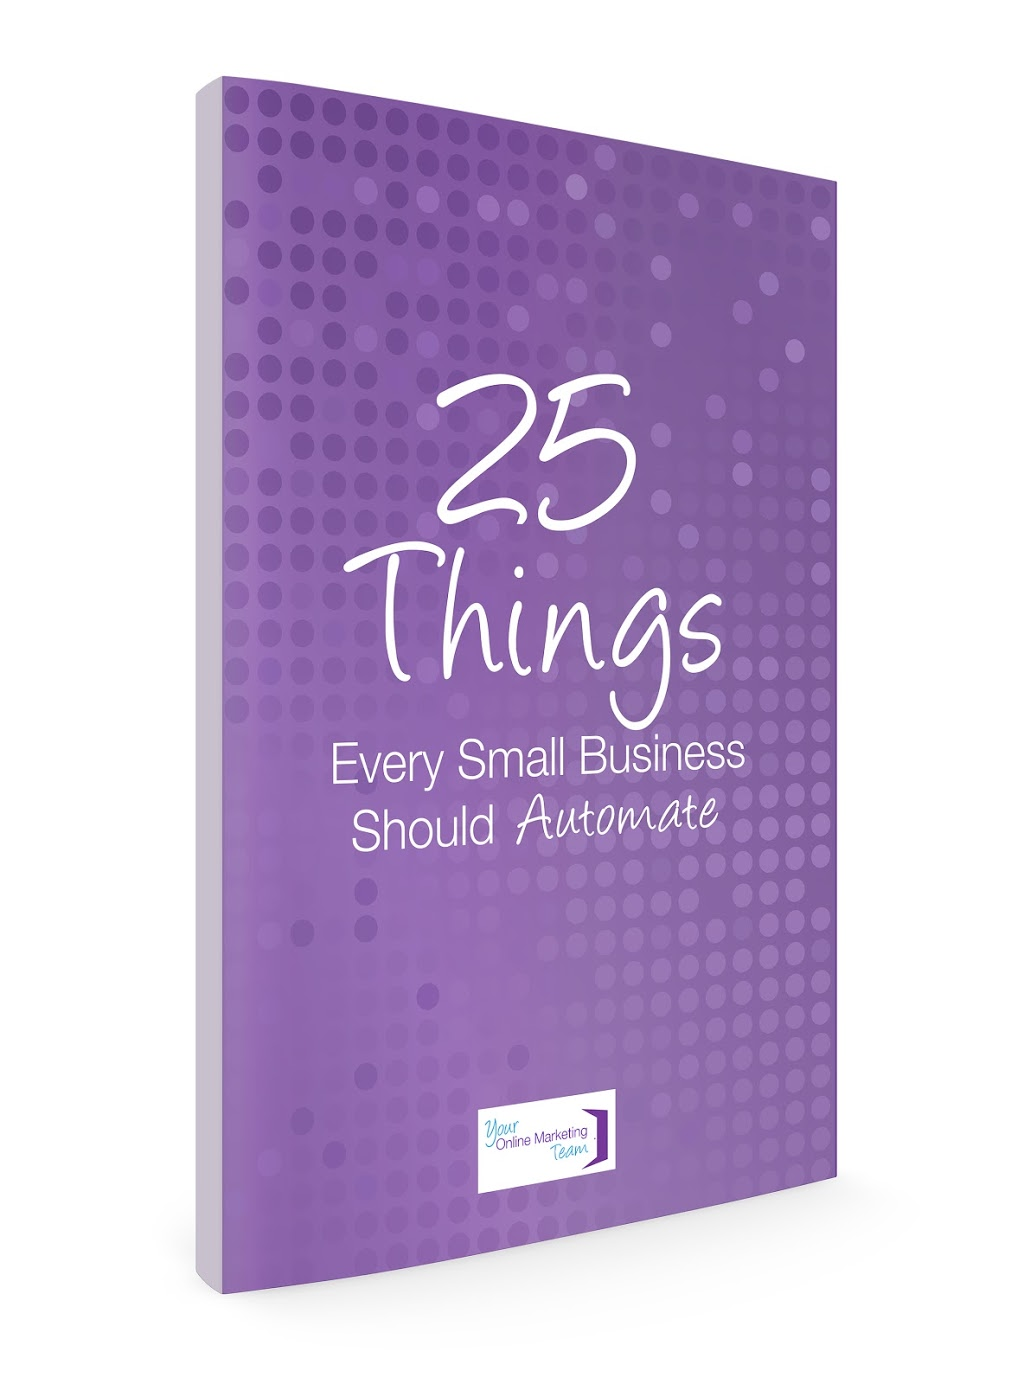 25-things-every-small-business-should-automate